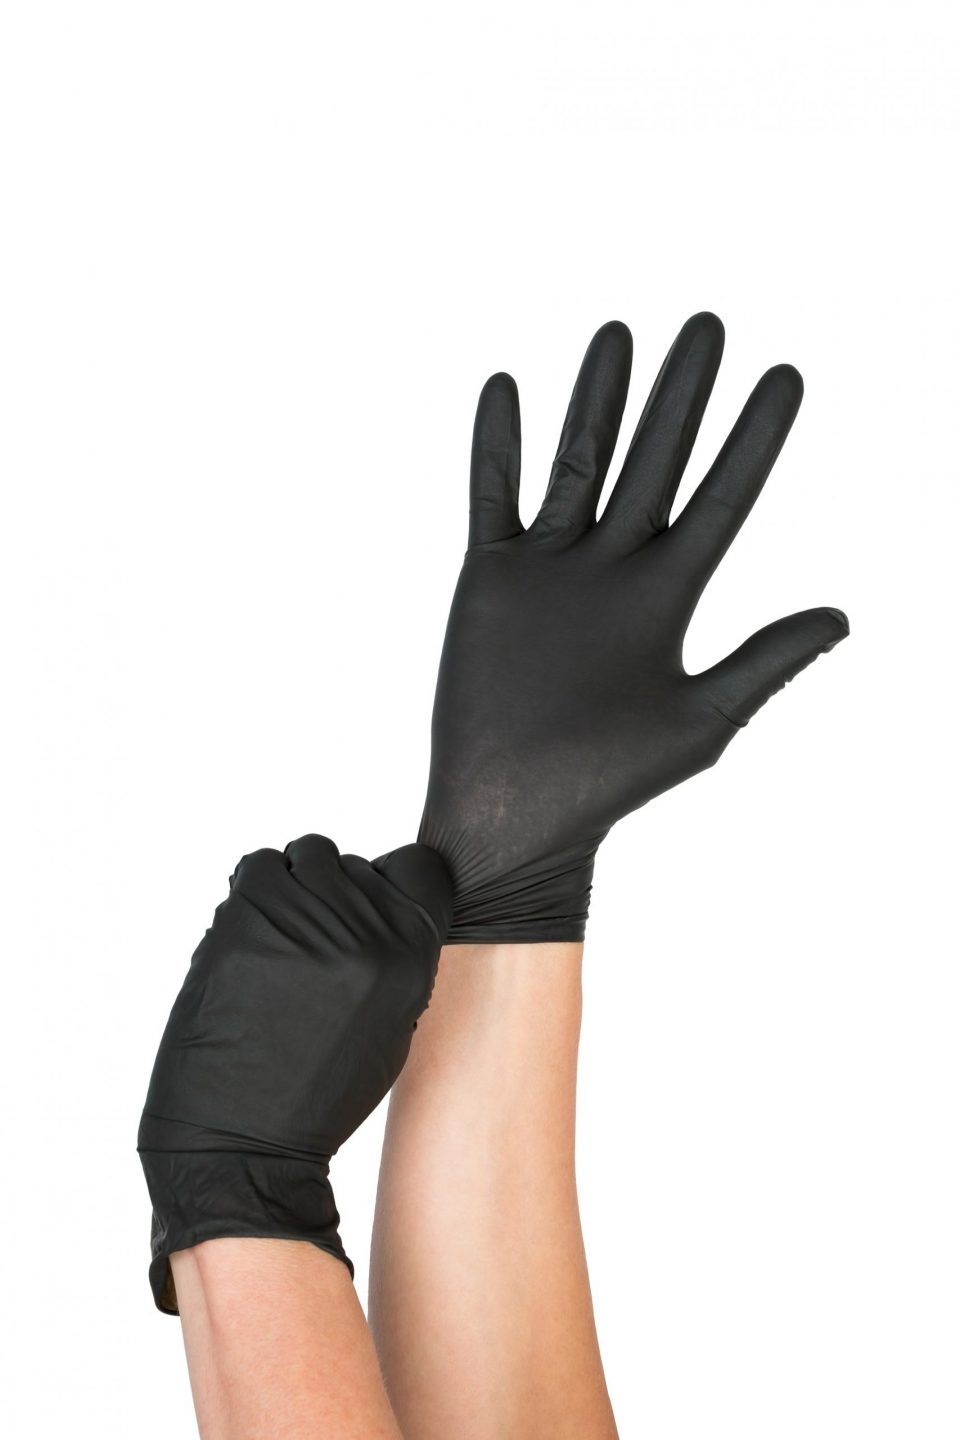 Biodegradable Gloves 100 Pack - Black-445